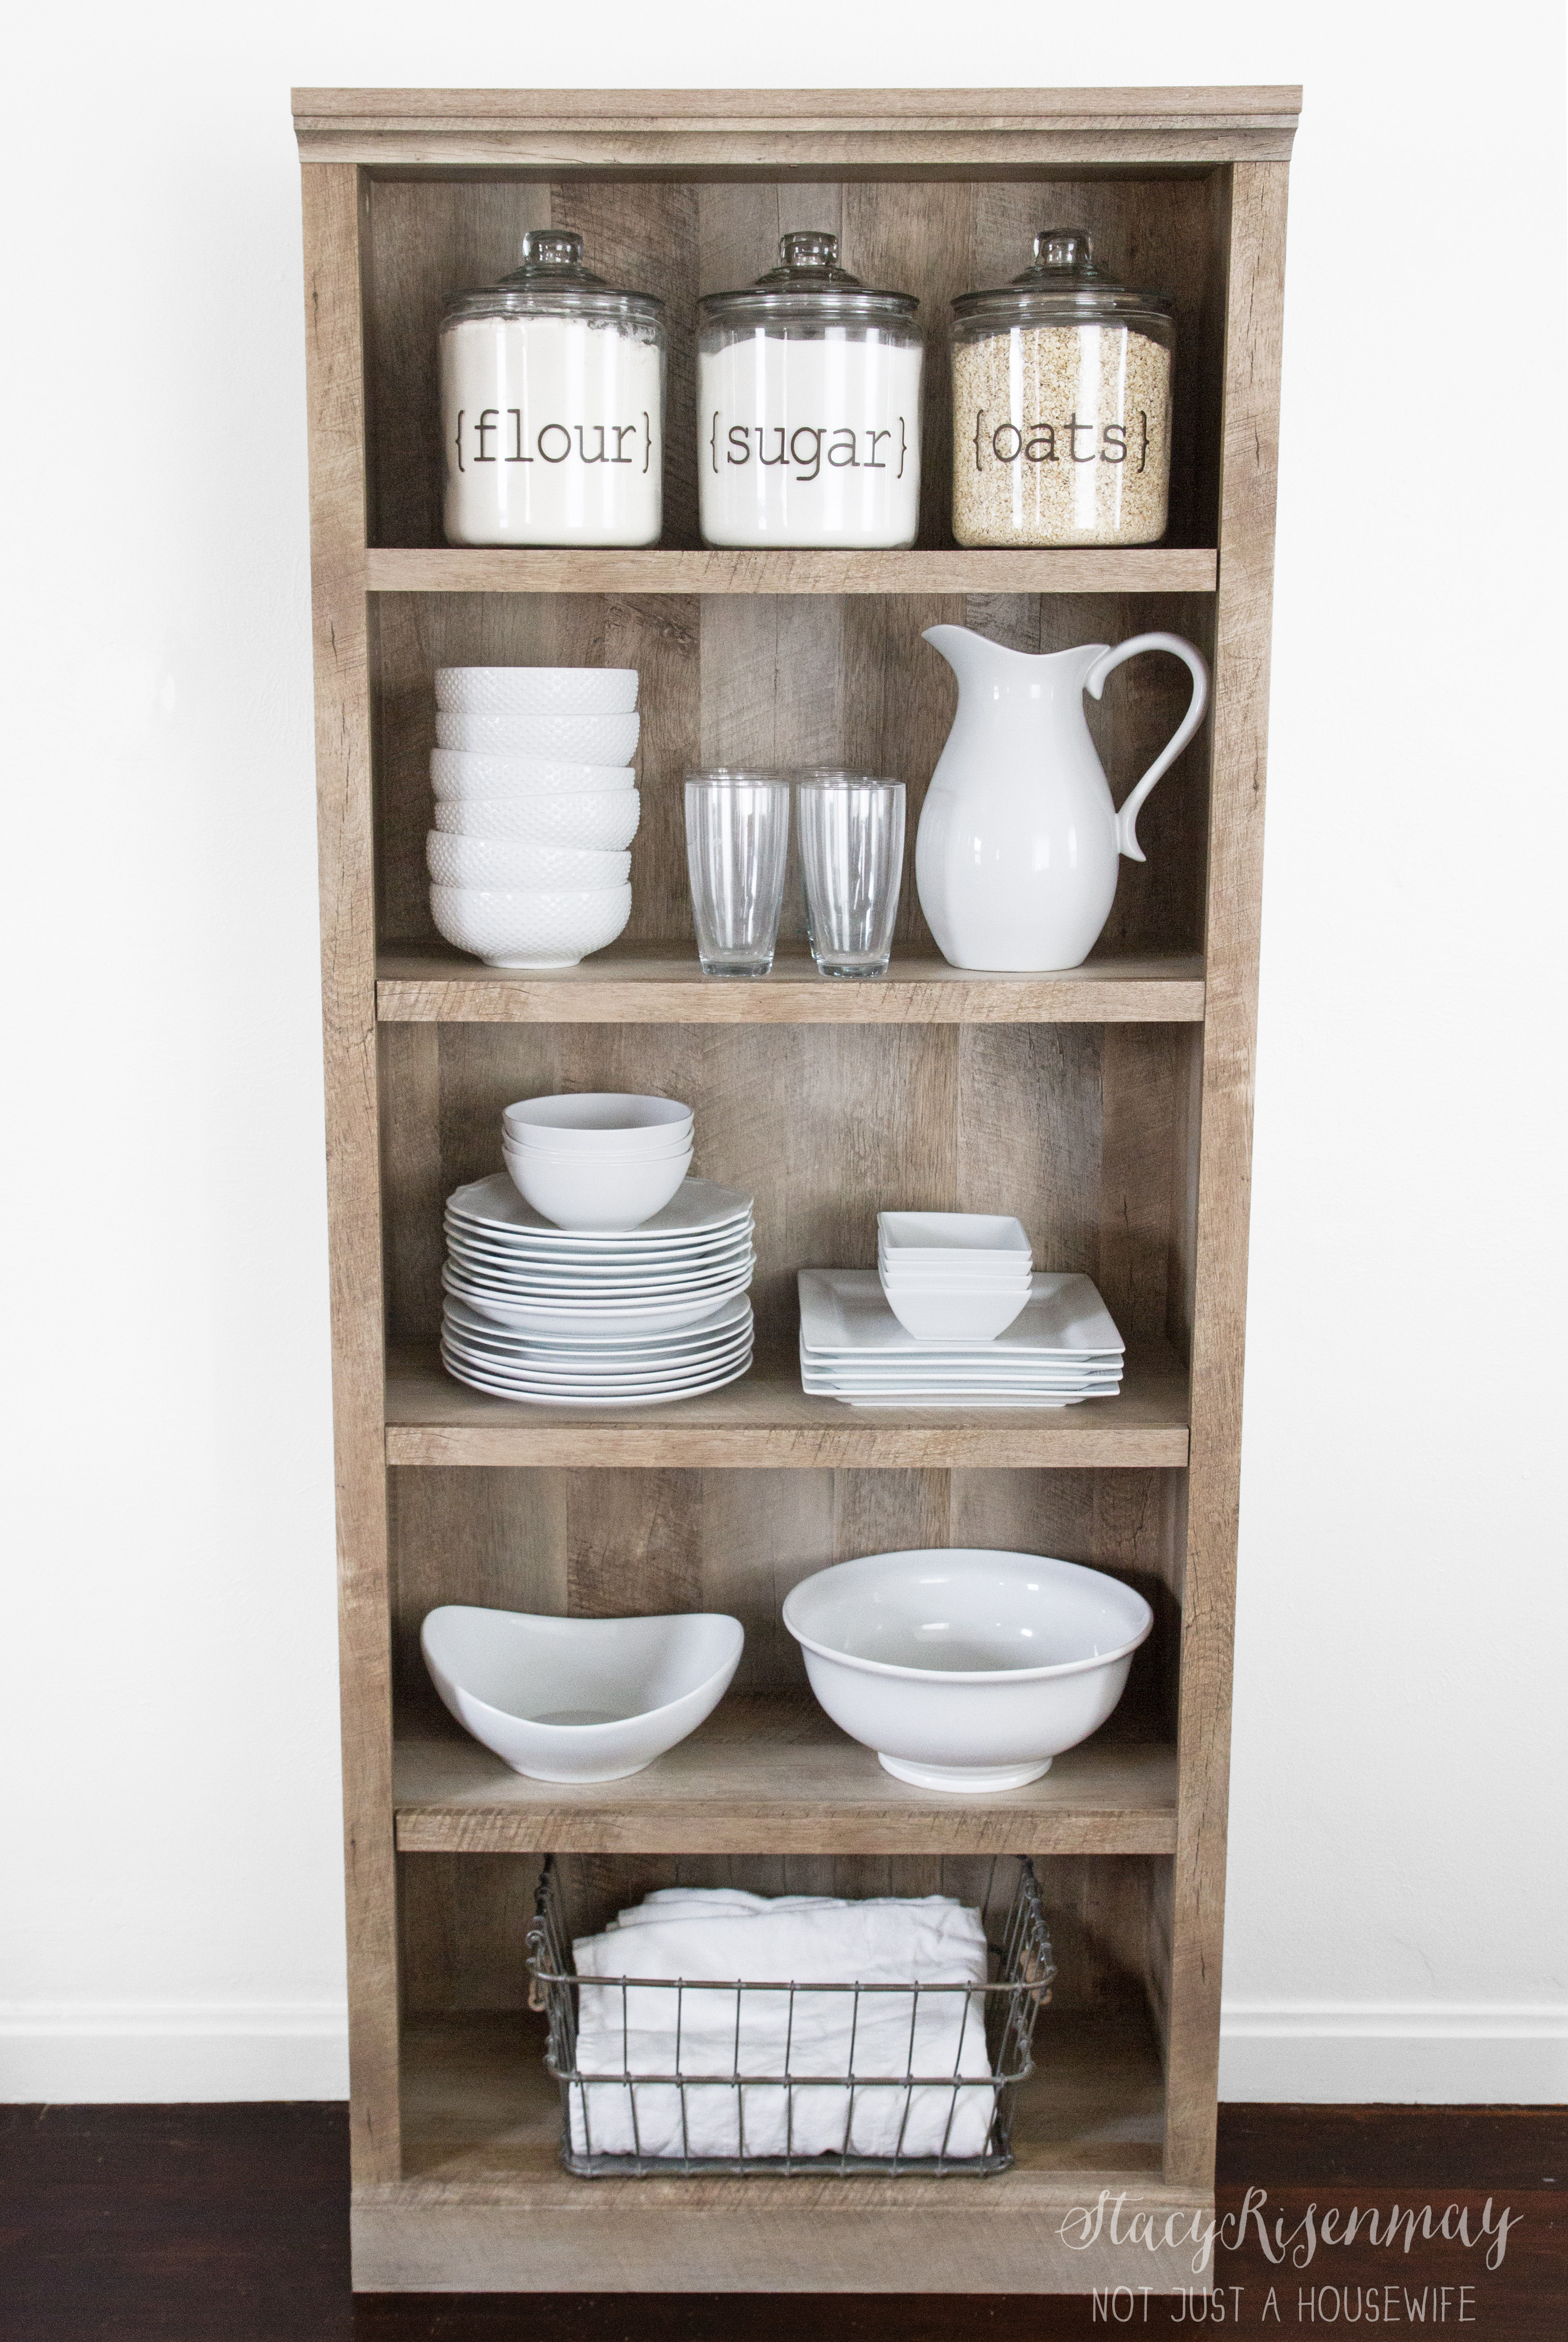 Kitchen Bookshelf Other Uses For Bookcases Stacy Risenmay